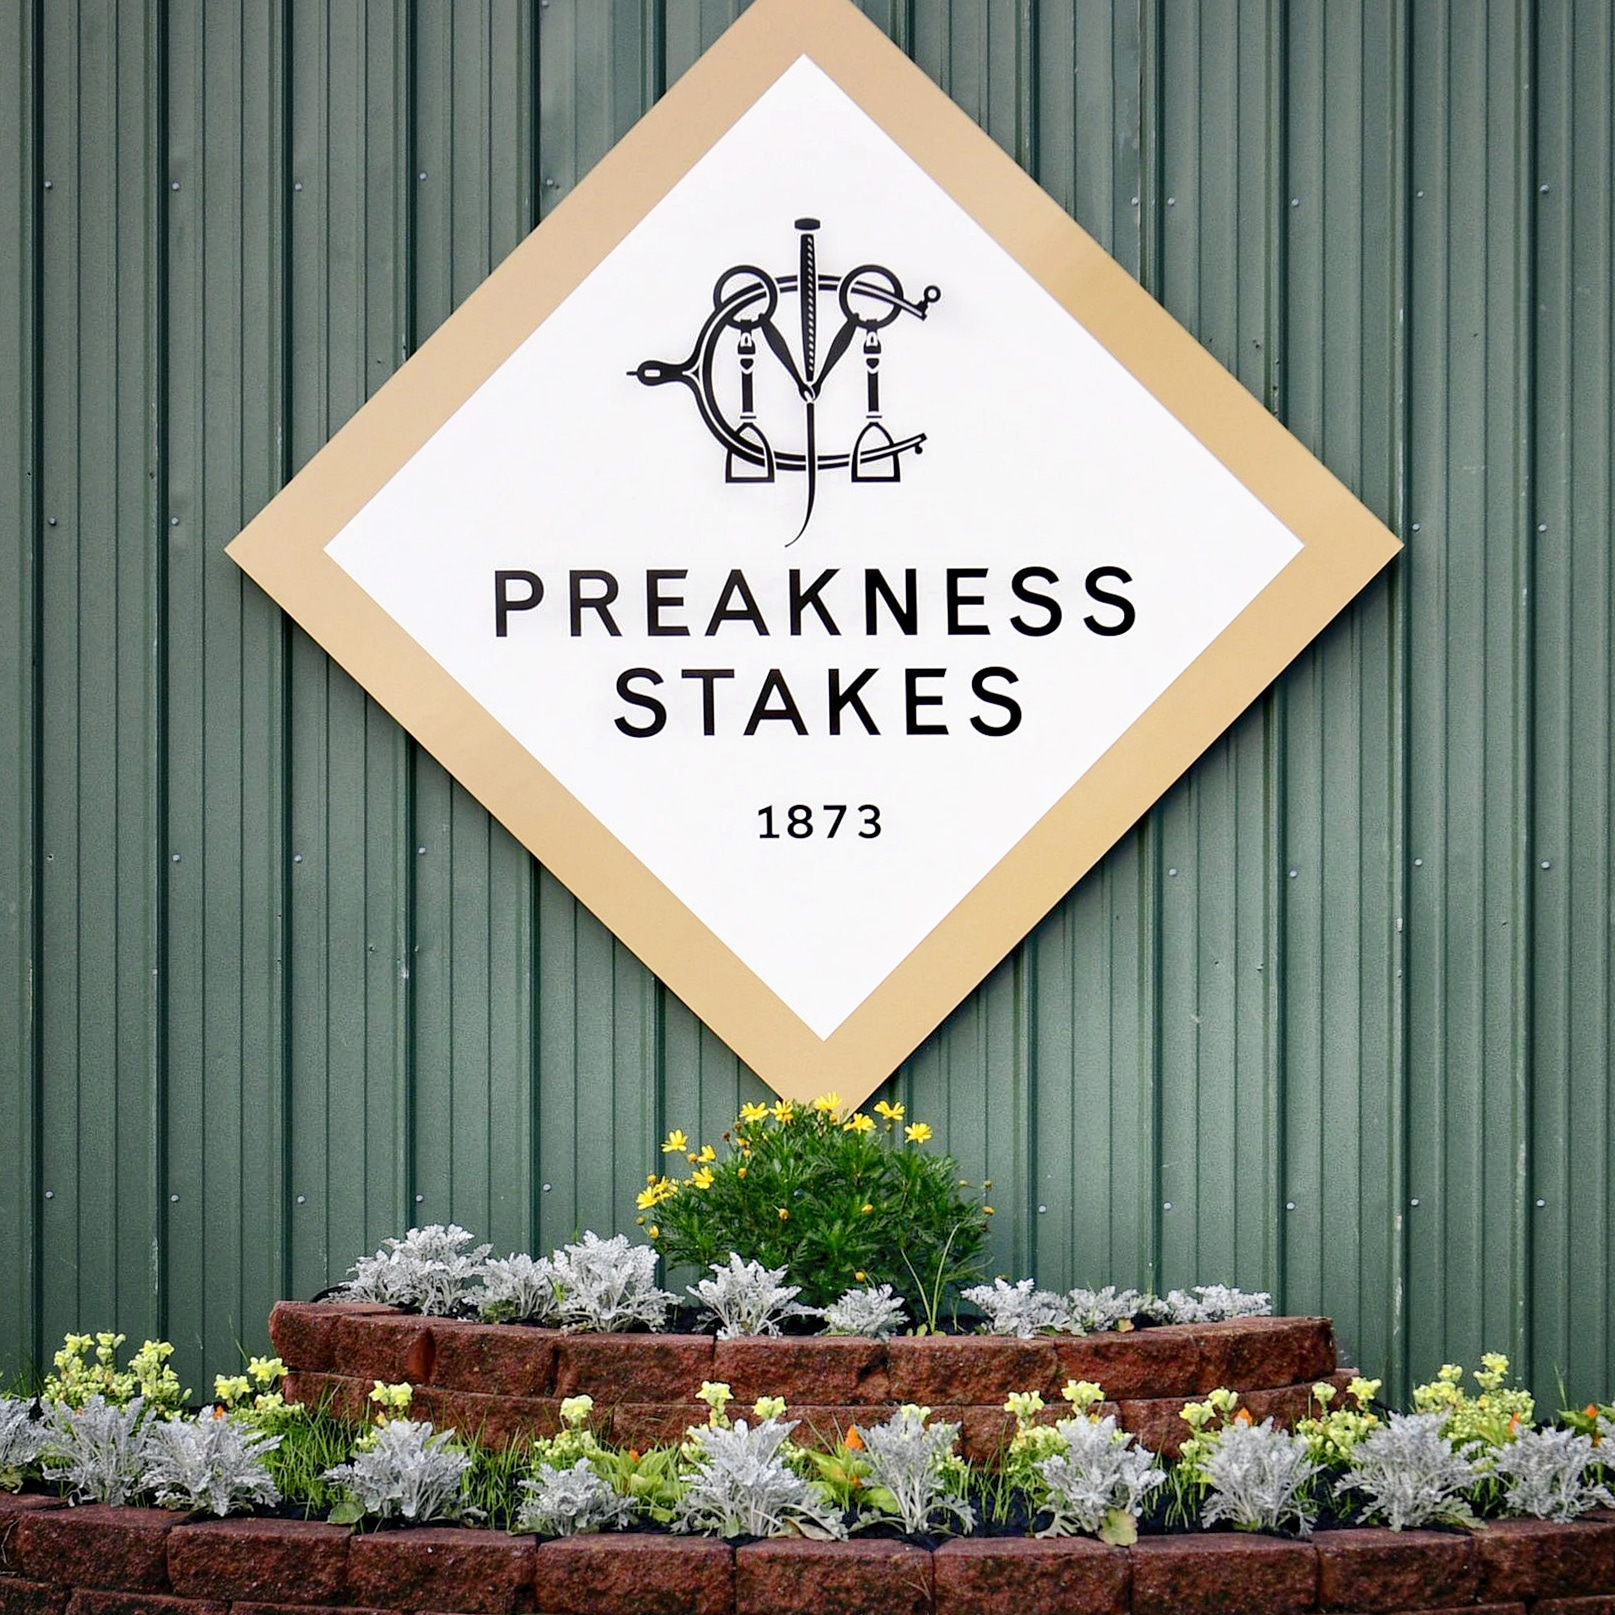 The Preakness Stakes - Branding, logo, event marketing